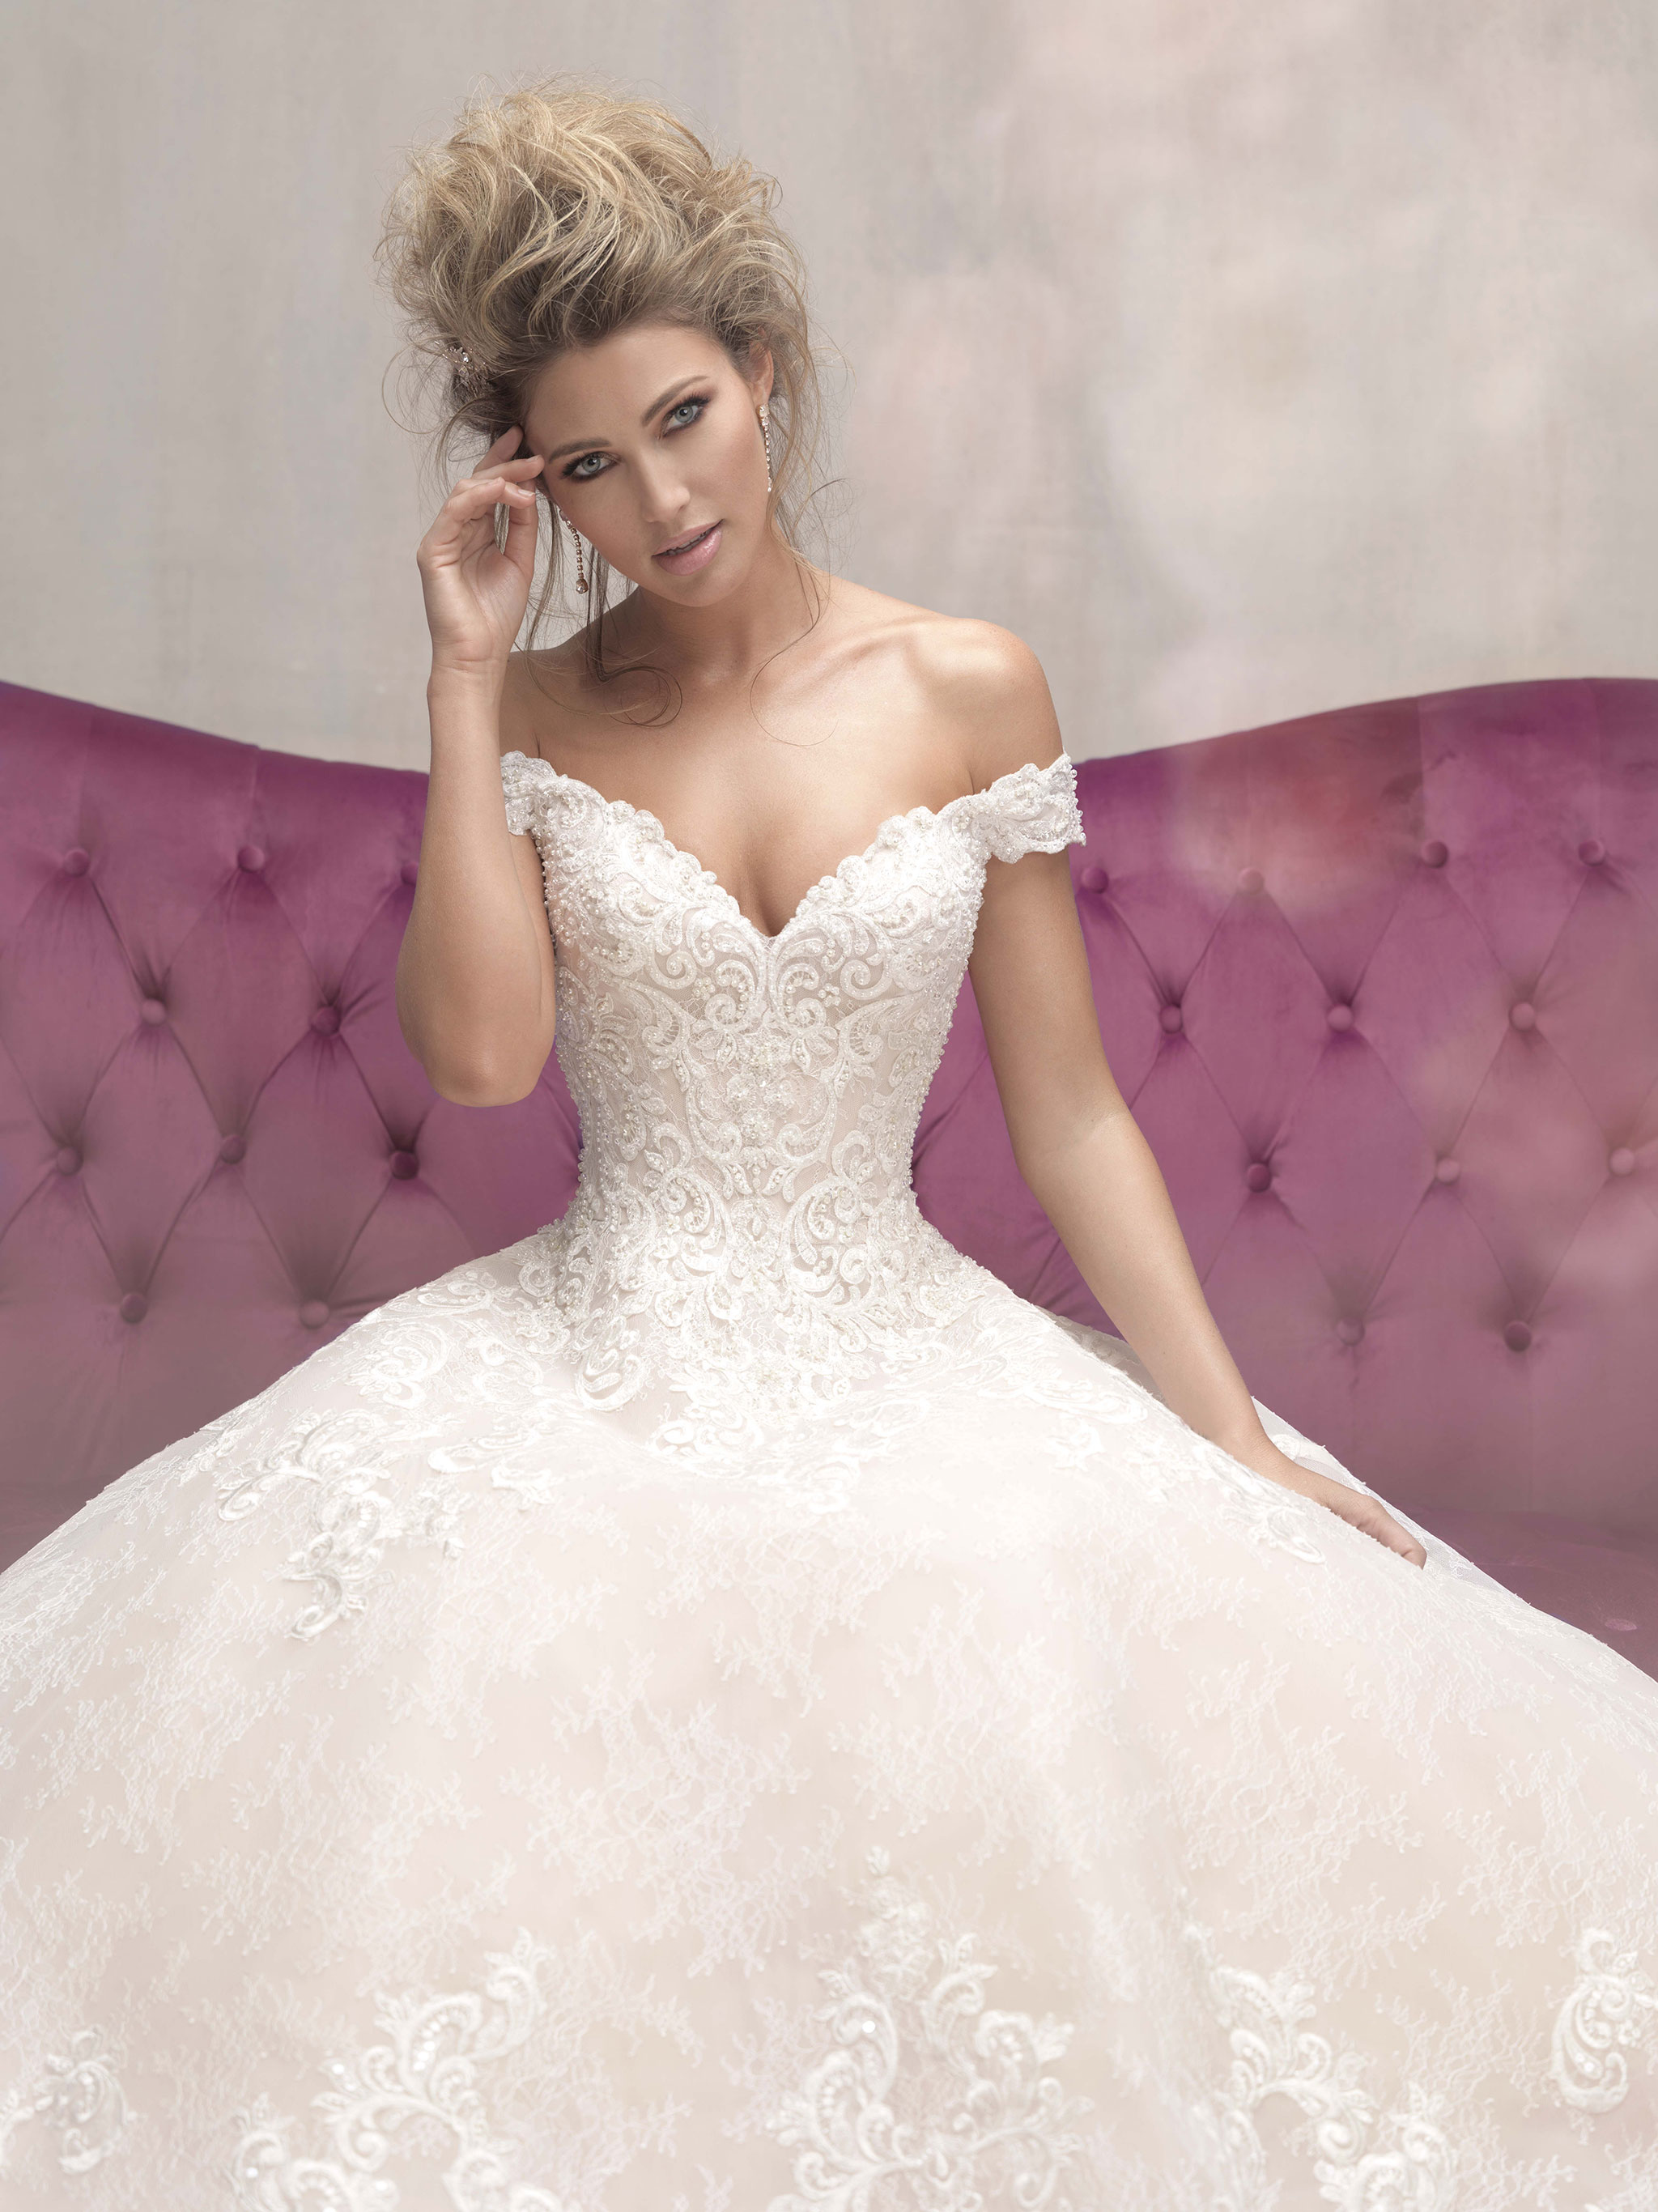 909b5c5511 Bridal Novias is committed to being the bridal shop with the best service  and value. Offering our brides…